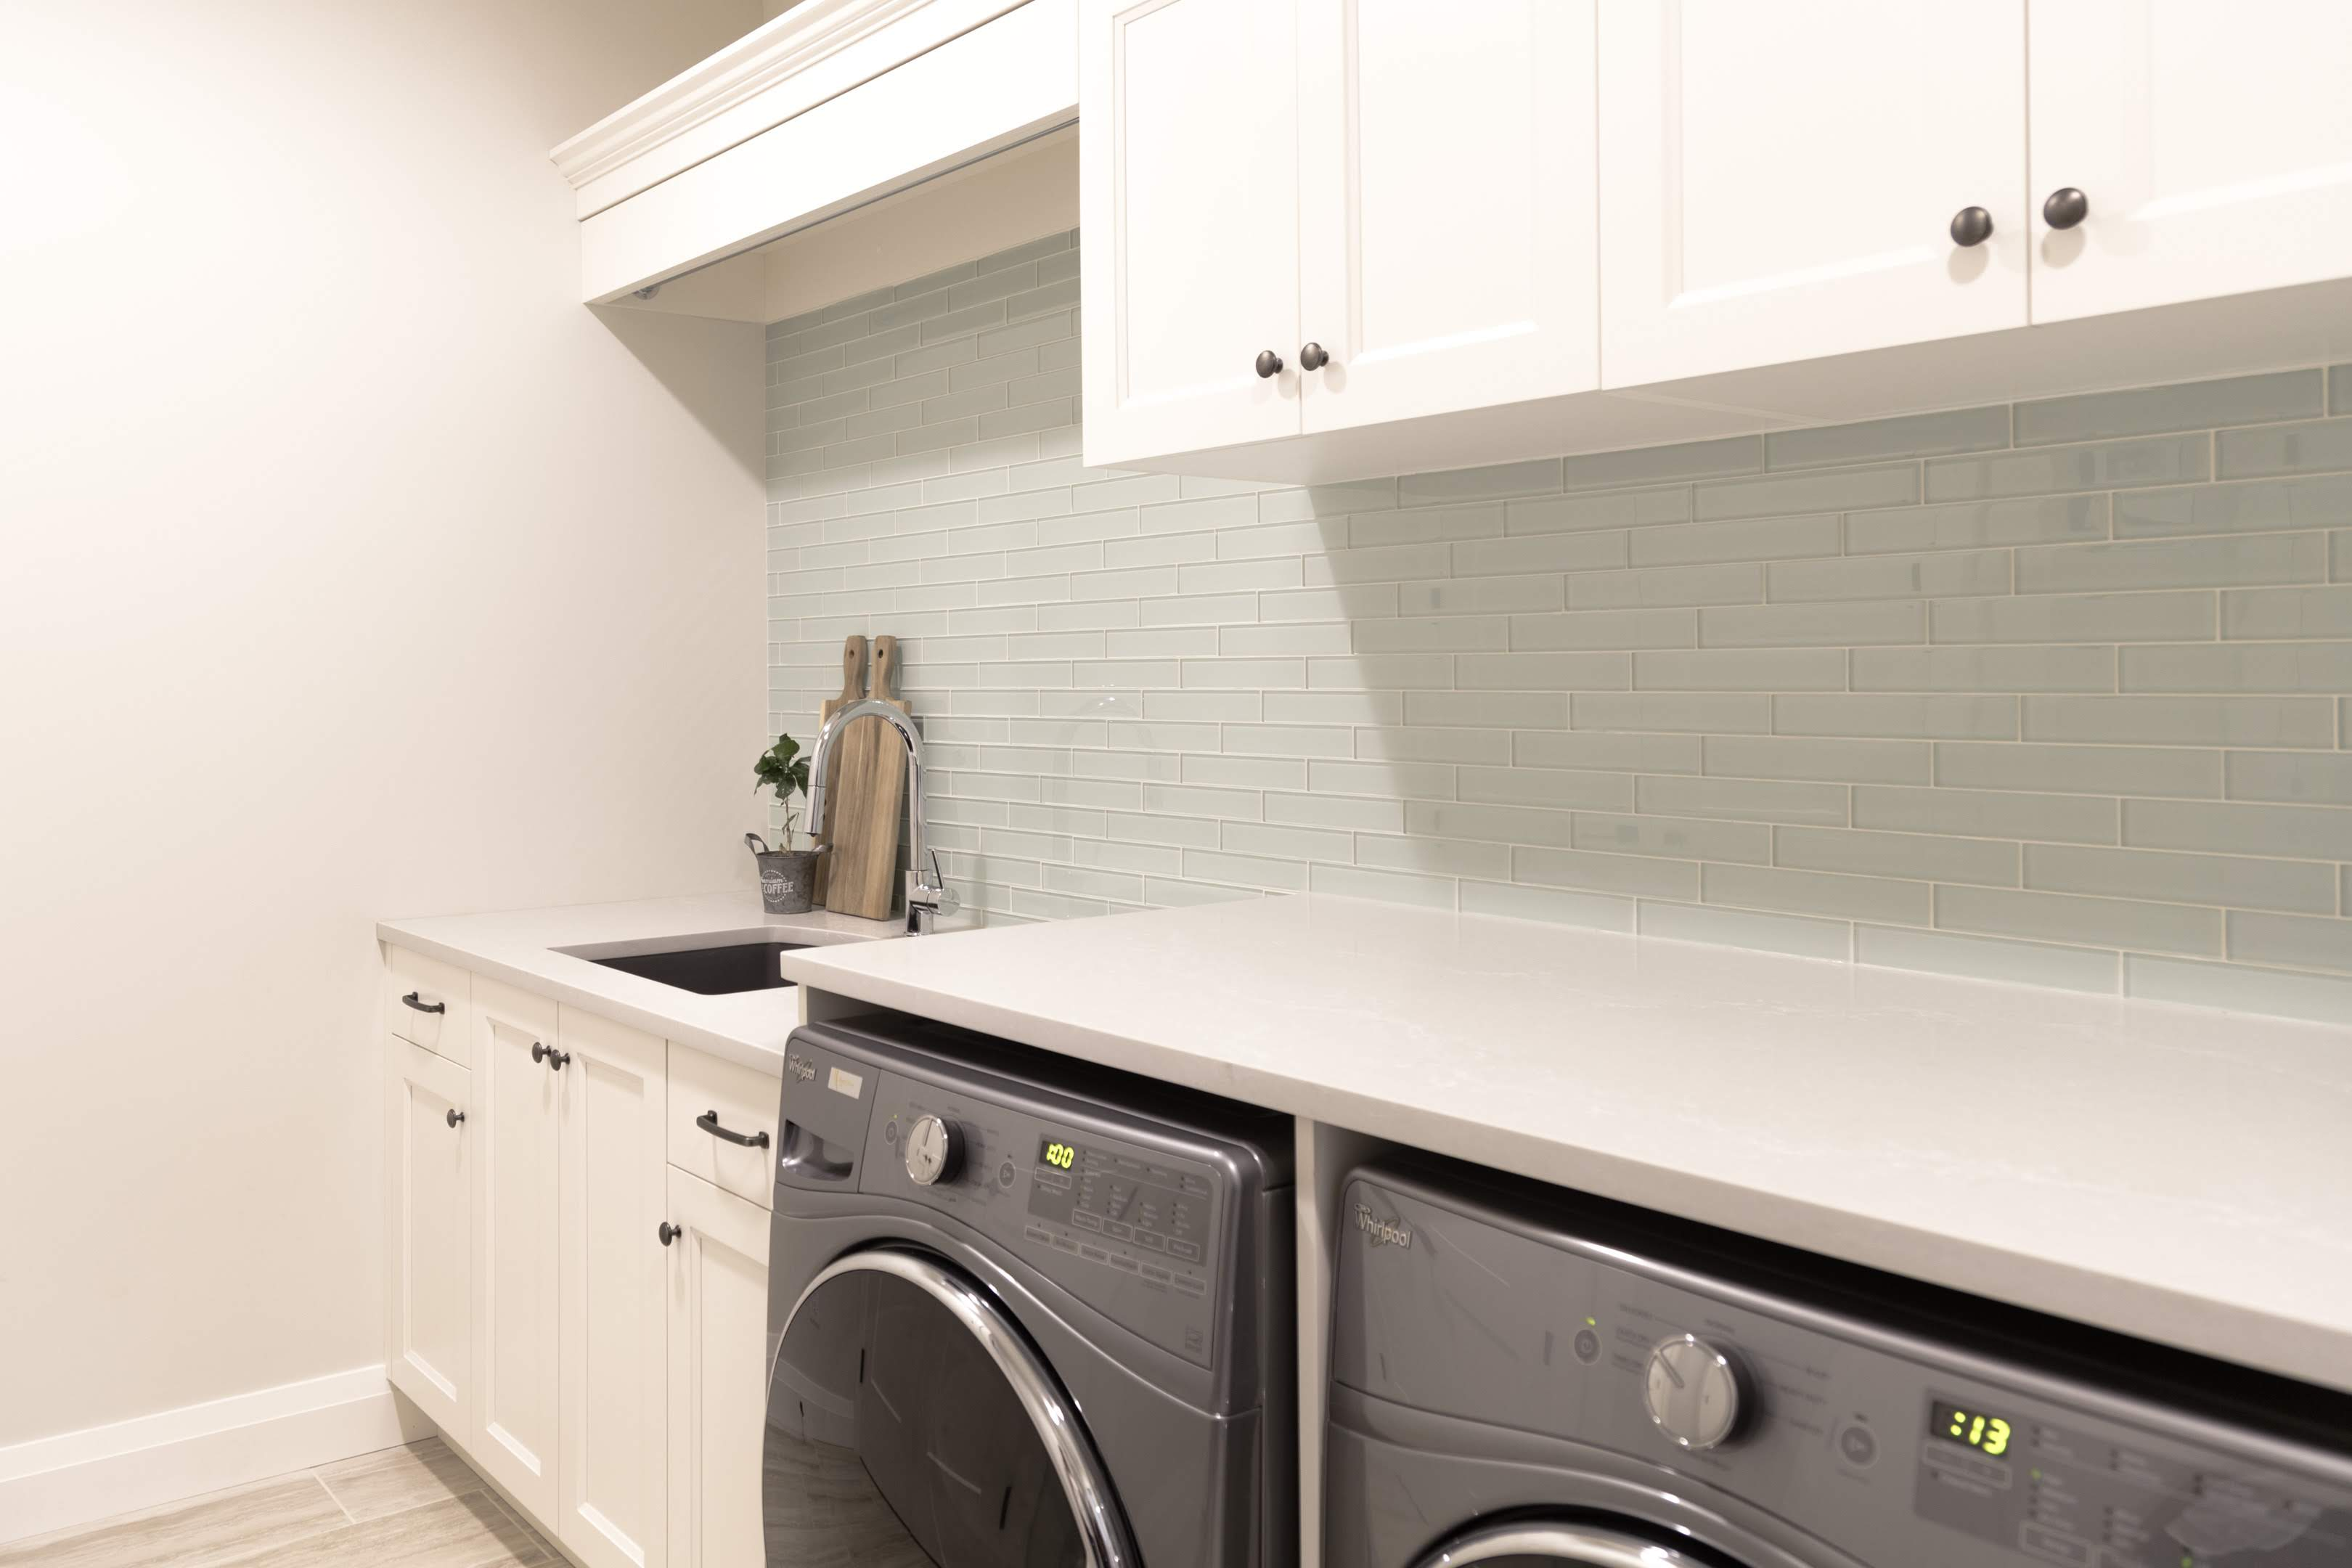 clean Laundry room built by Impact Builders